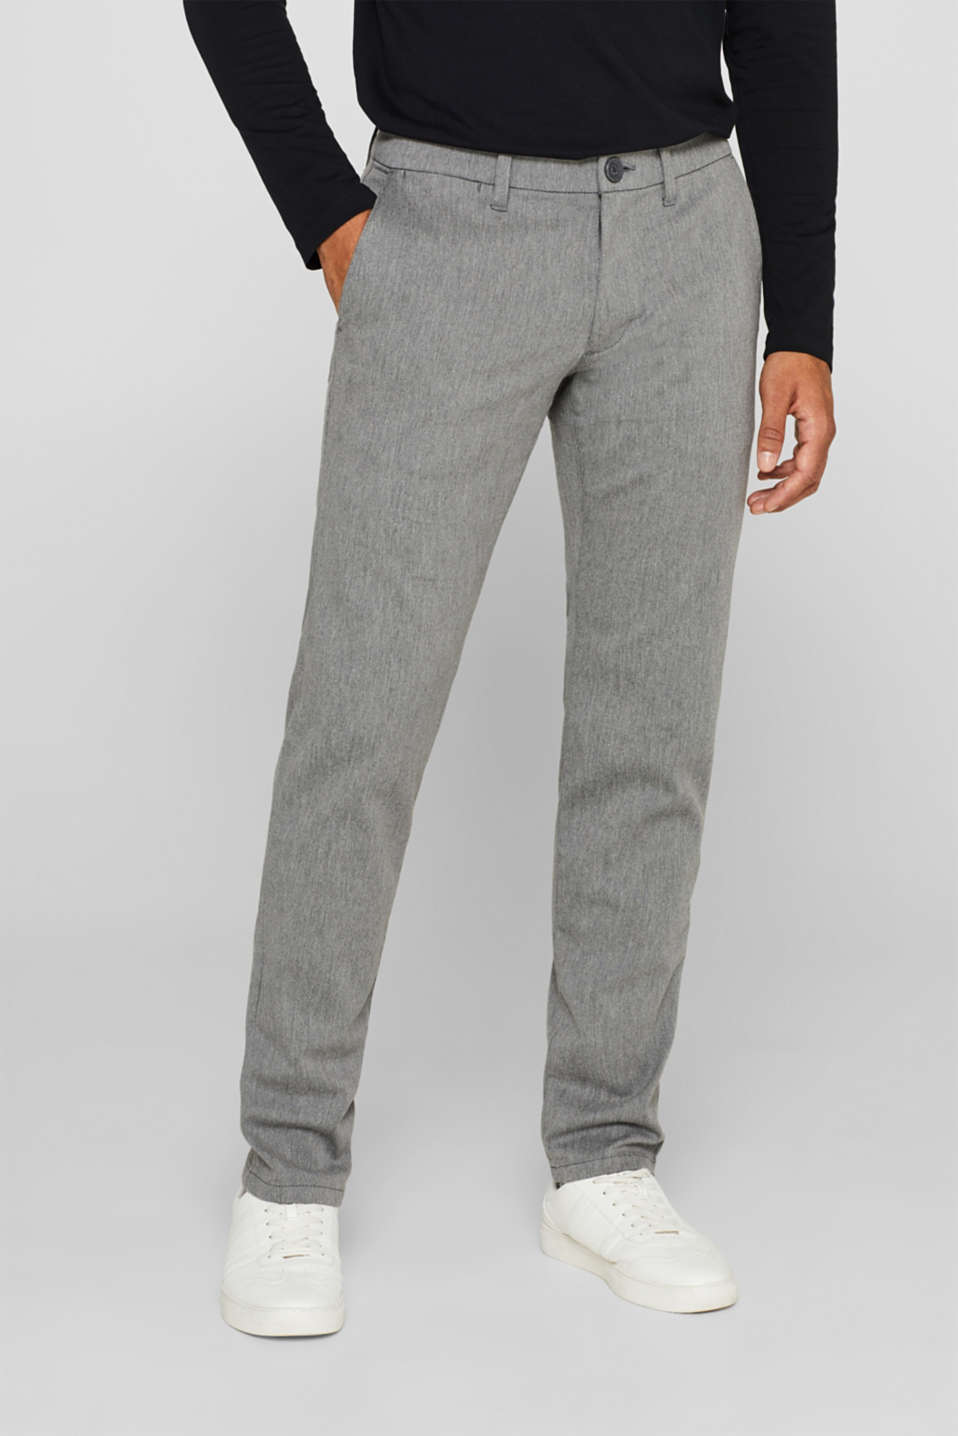 Pants woven Slim fit, GREY, detail image number 0